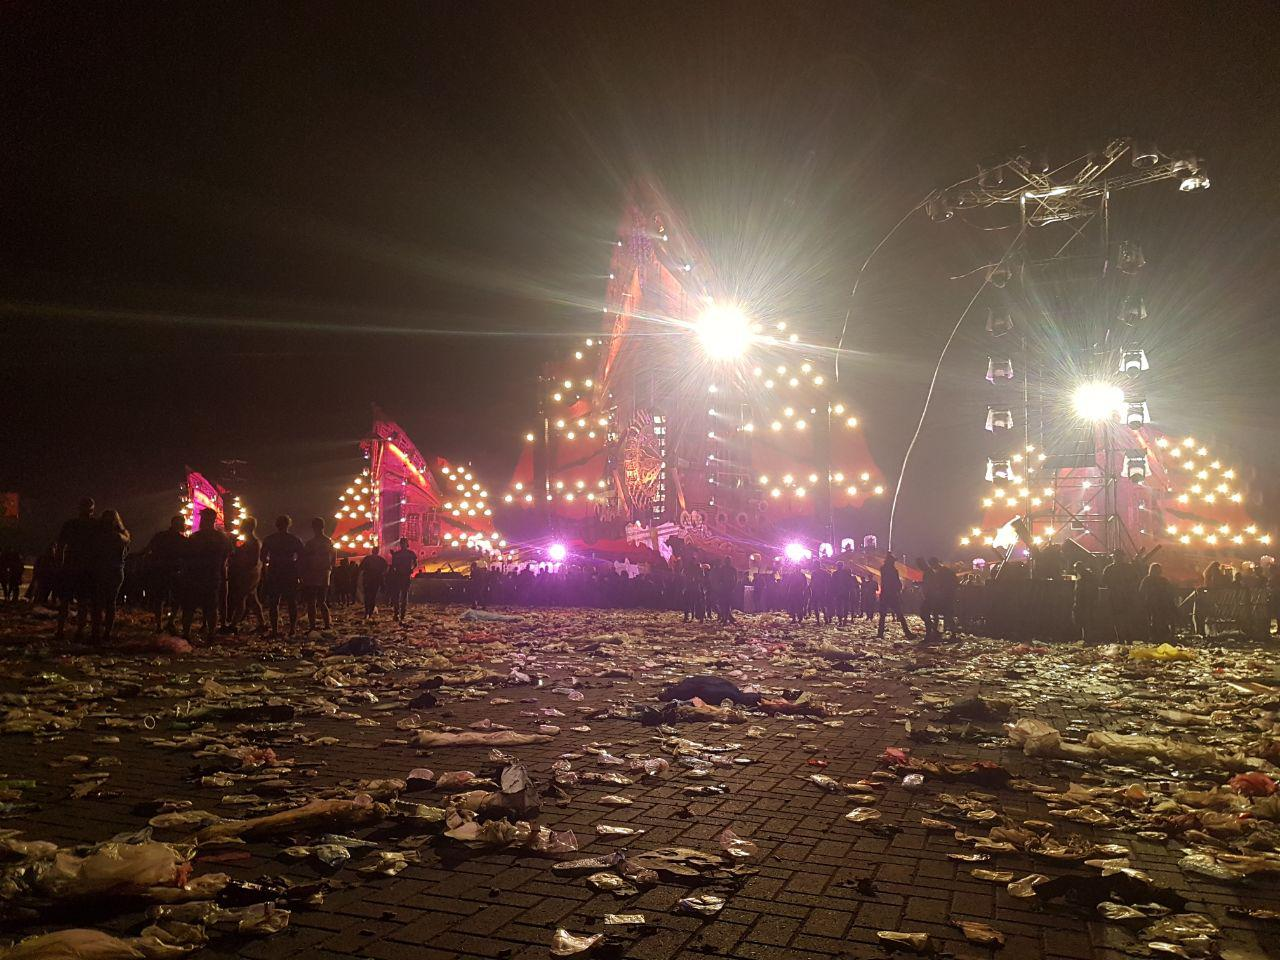 [img width=1024 height=768]http://www.eindefotos.nl/images/newspost_images/2017-defqon1_pre.jpg[/img]